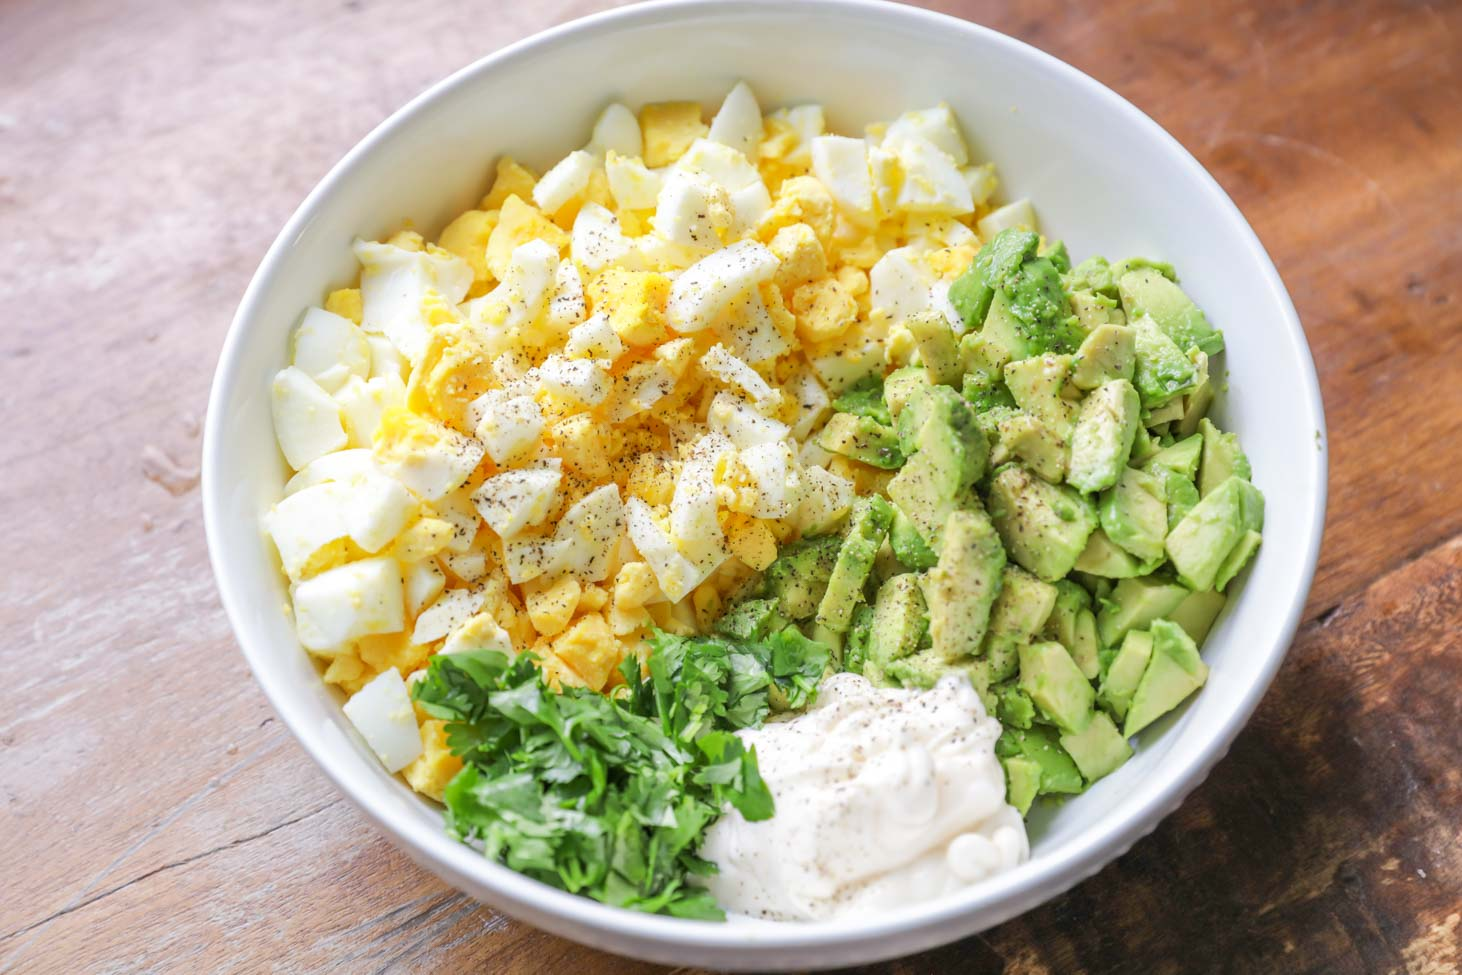 All ingredients for avocado egg salad in a white bowl